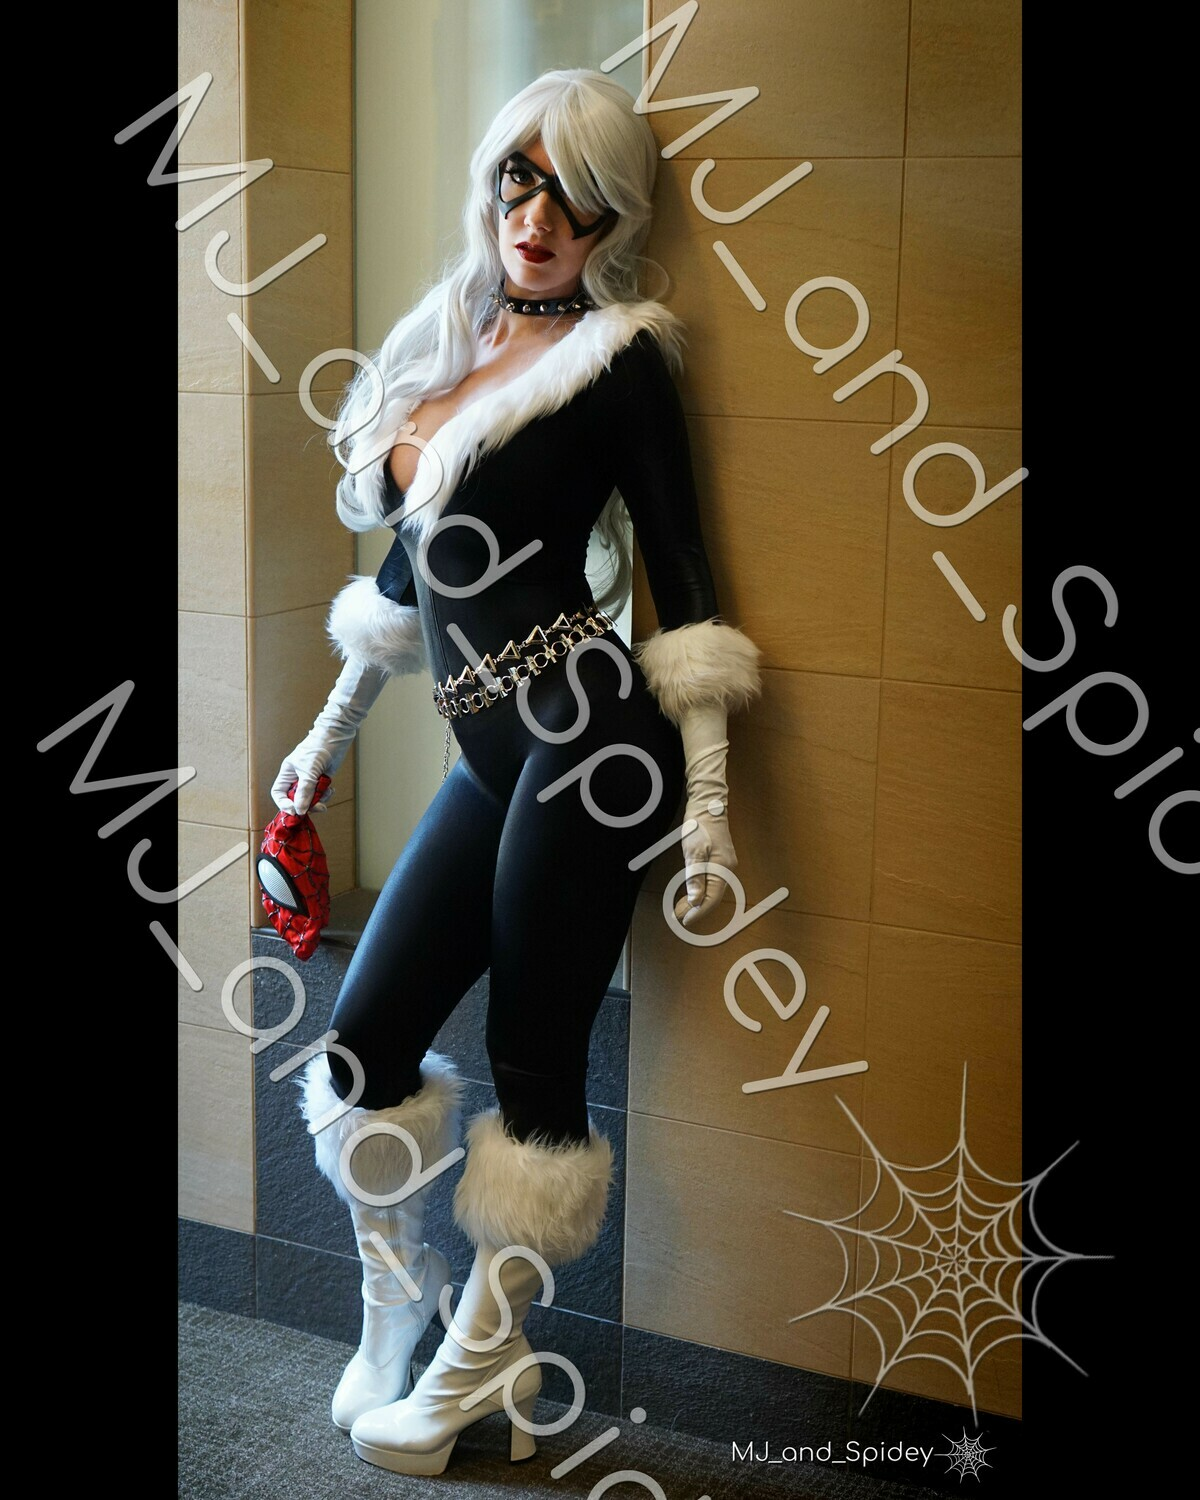 Marvel - Spider-Man - Black Cat - Classic No. 1 - 8x10 Cosplay Print (@MJ_and_Spidey, MJ and Spidey, Comics)